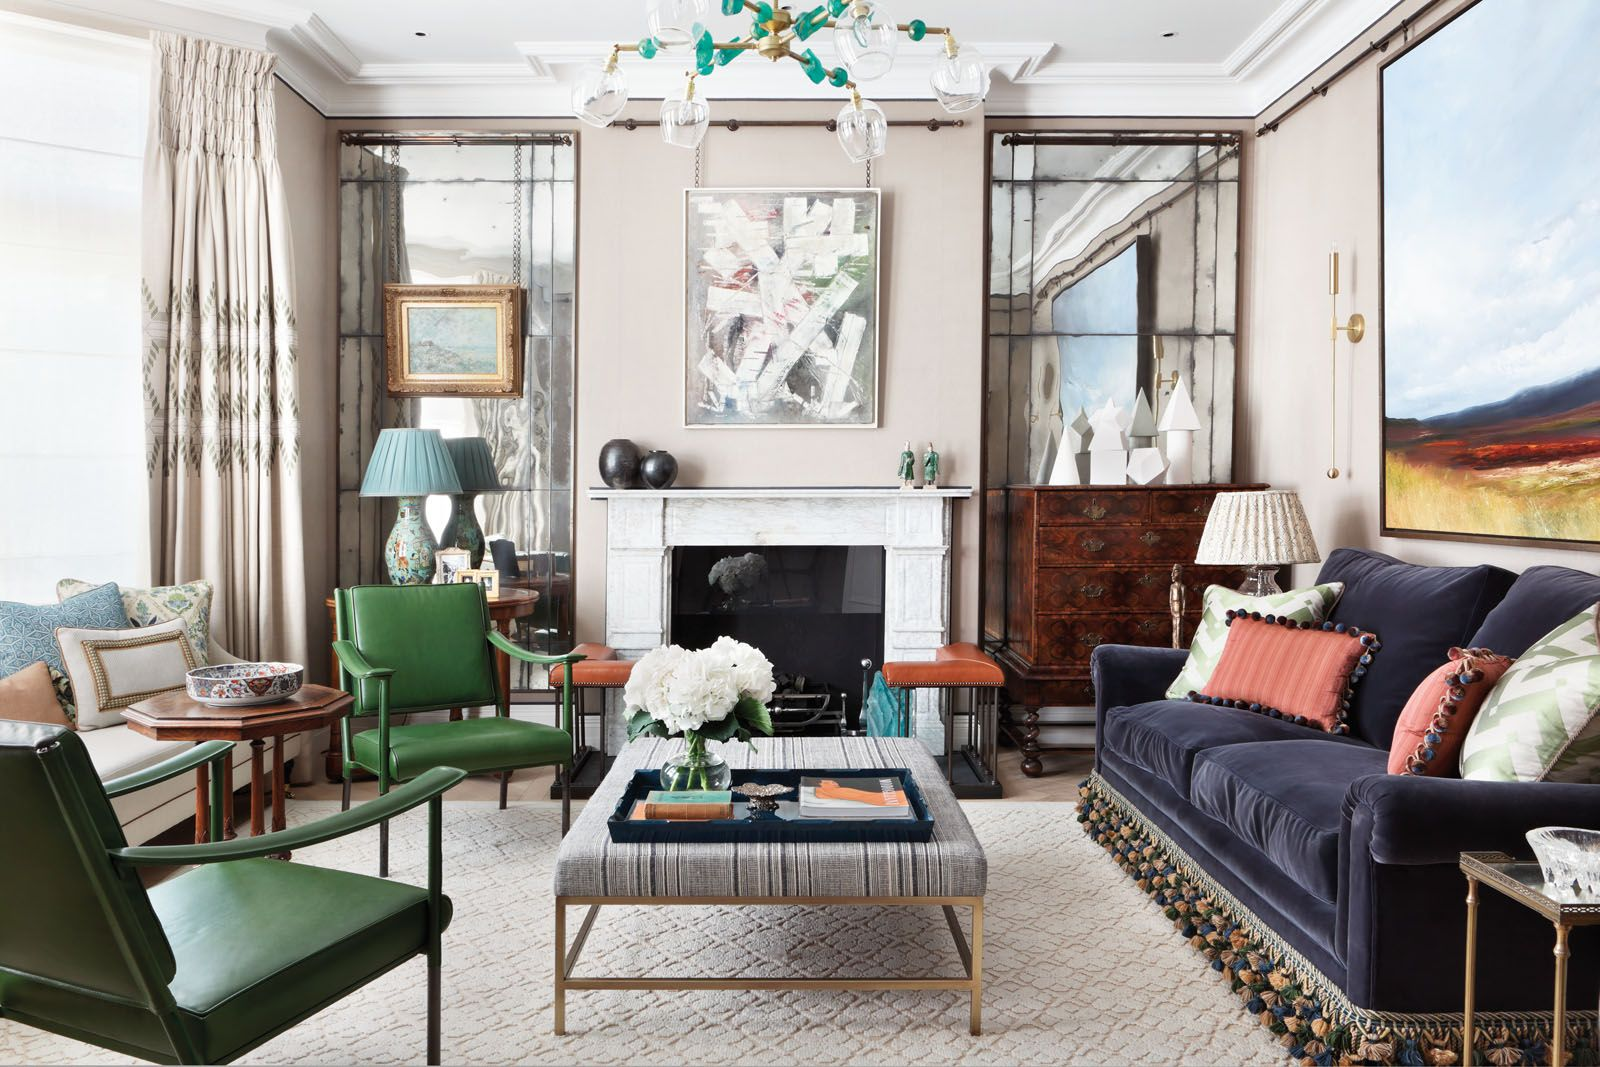 Home Tour: A Modern London Townhouse Featuring Colourful Art And Vintage Pieces